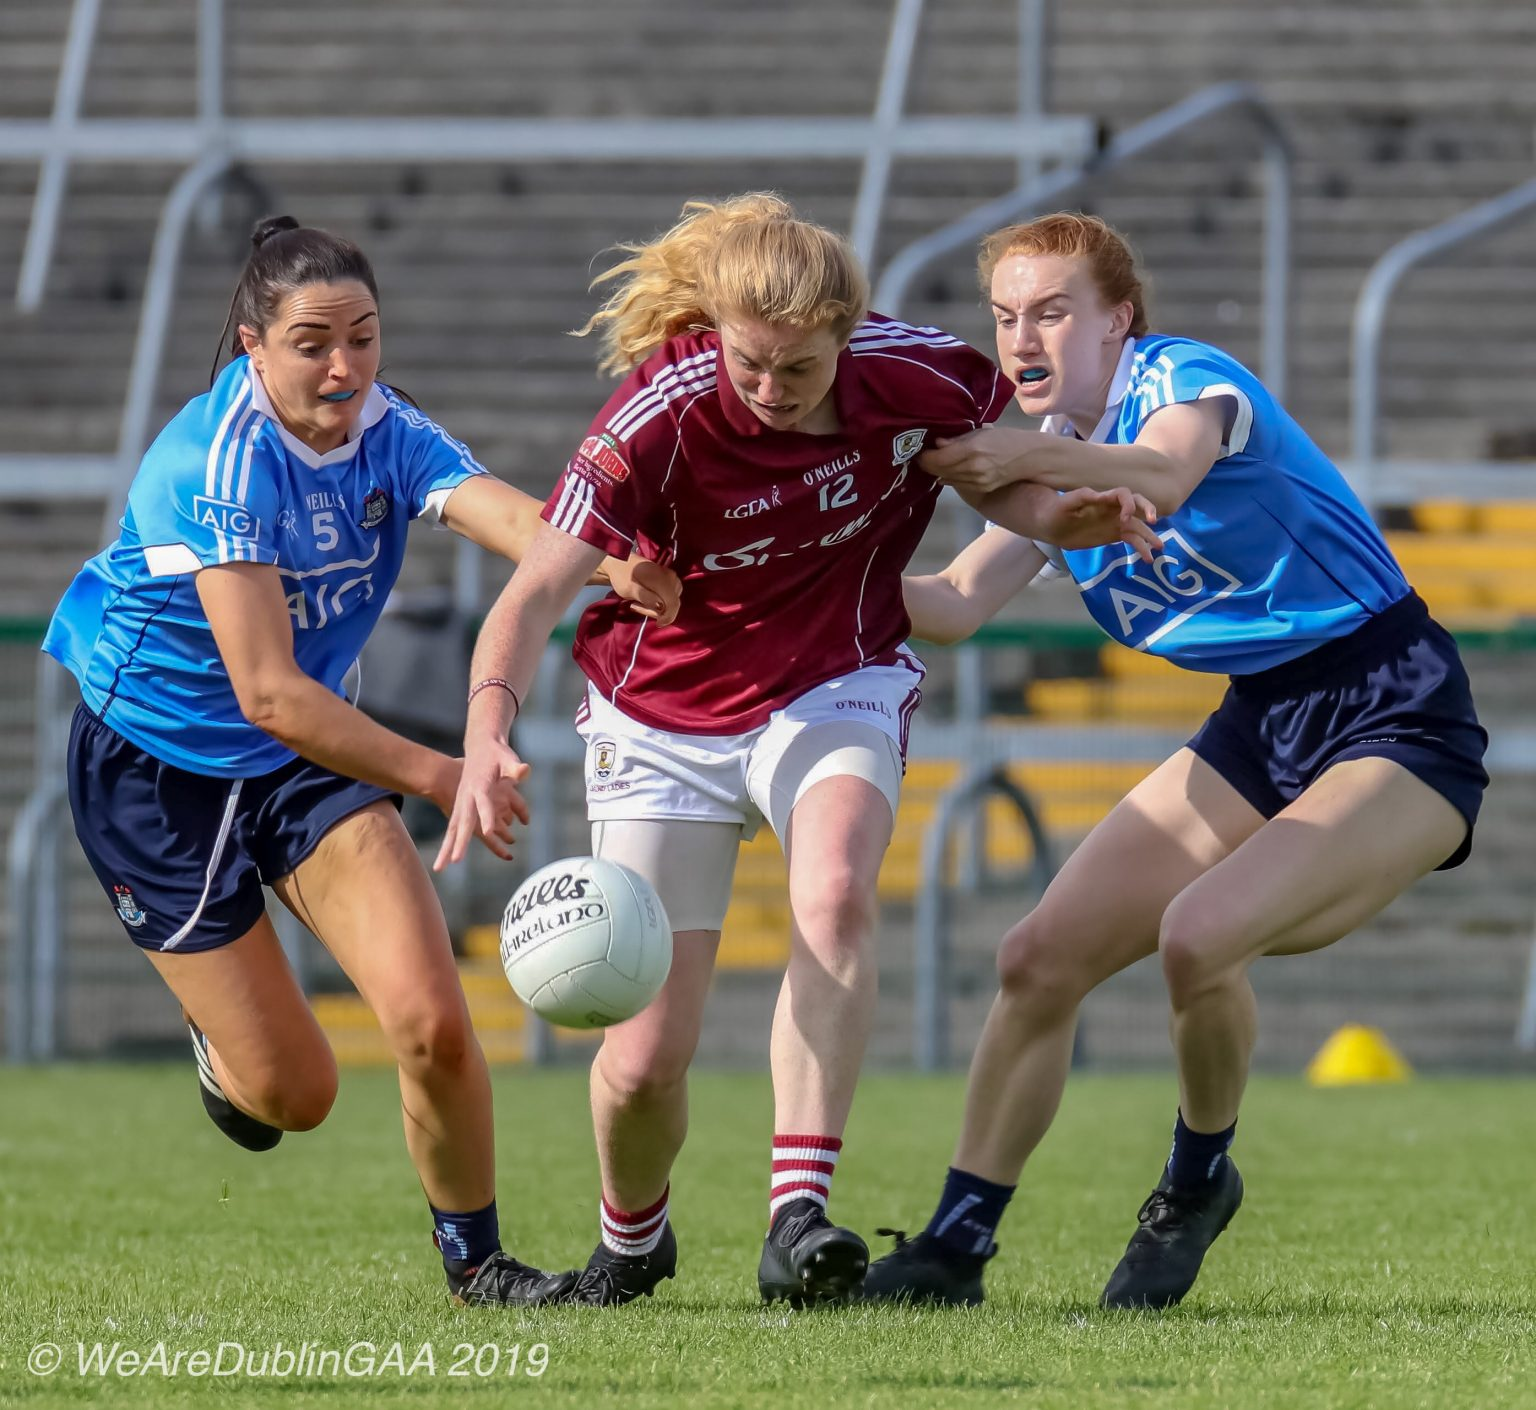 Two Dublin Ladies footballers in sky blue jerseys and navy shorts move in to tackle a Galway player in a maroon jersey and white shorts their NFL game will be live streamed on facebook